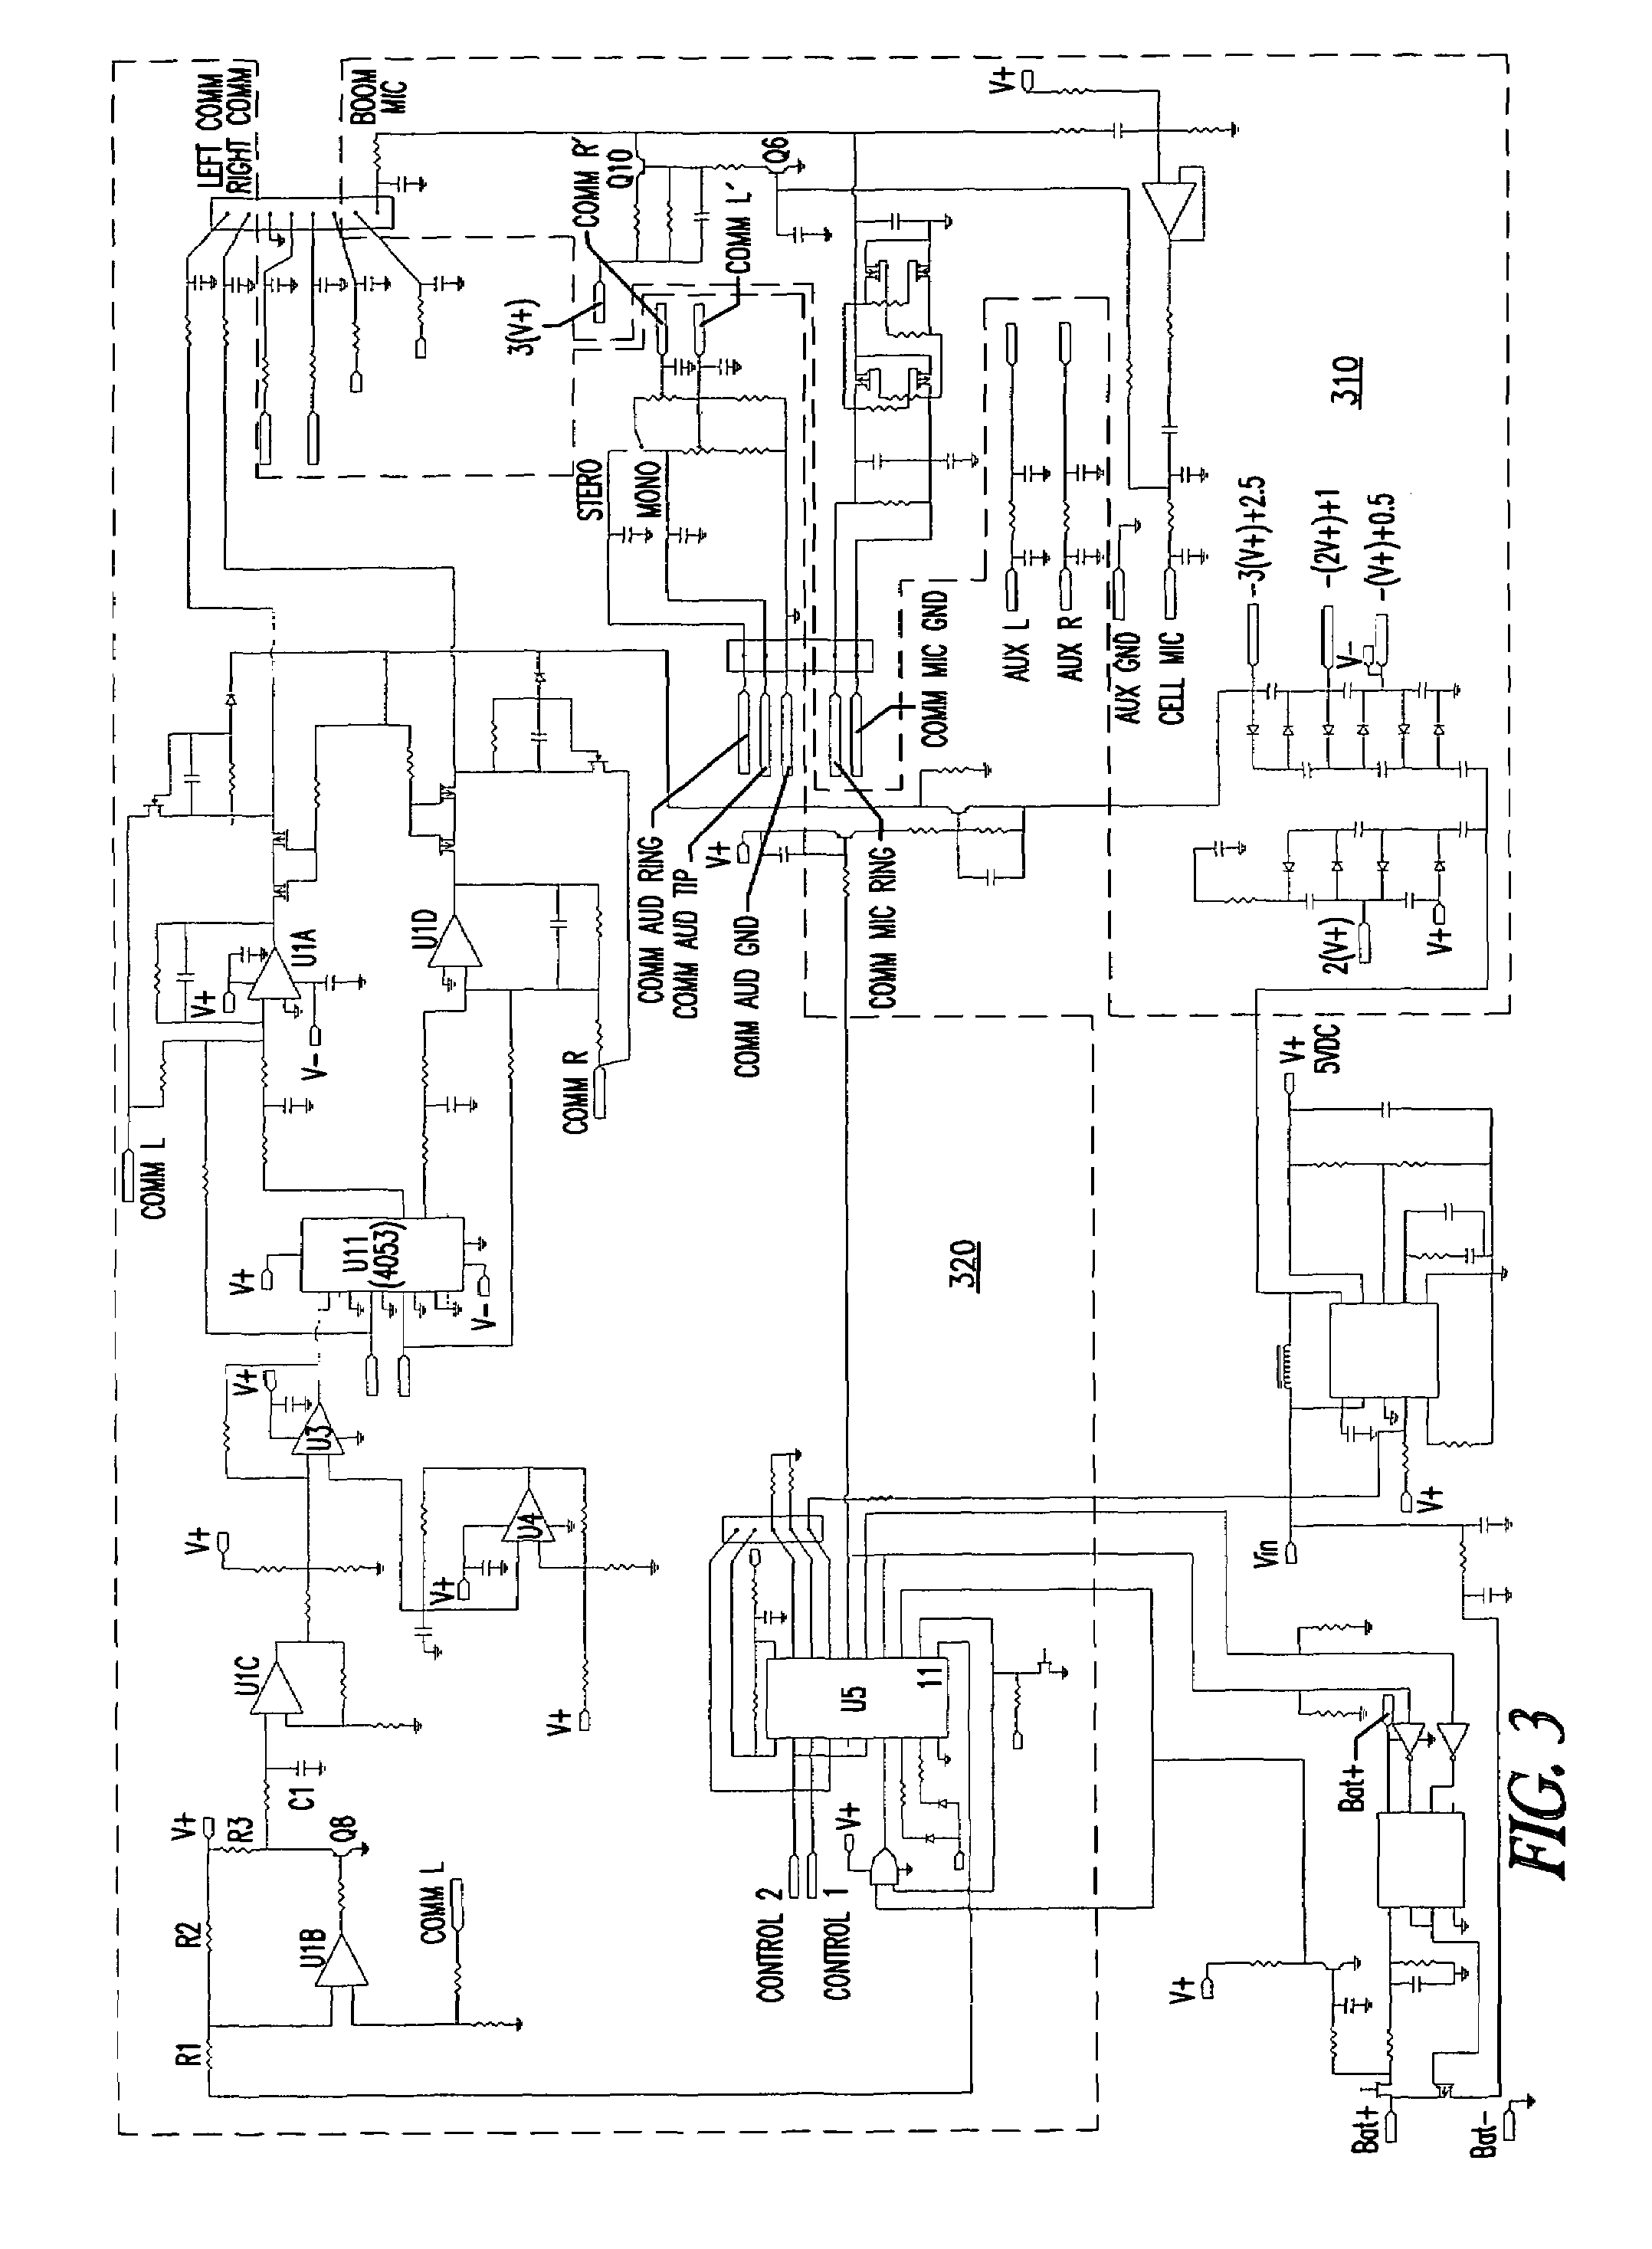 Patent Us7907721 Headset With Auxiliary Input Jacks S